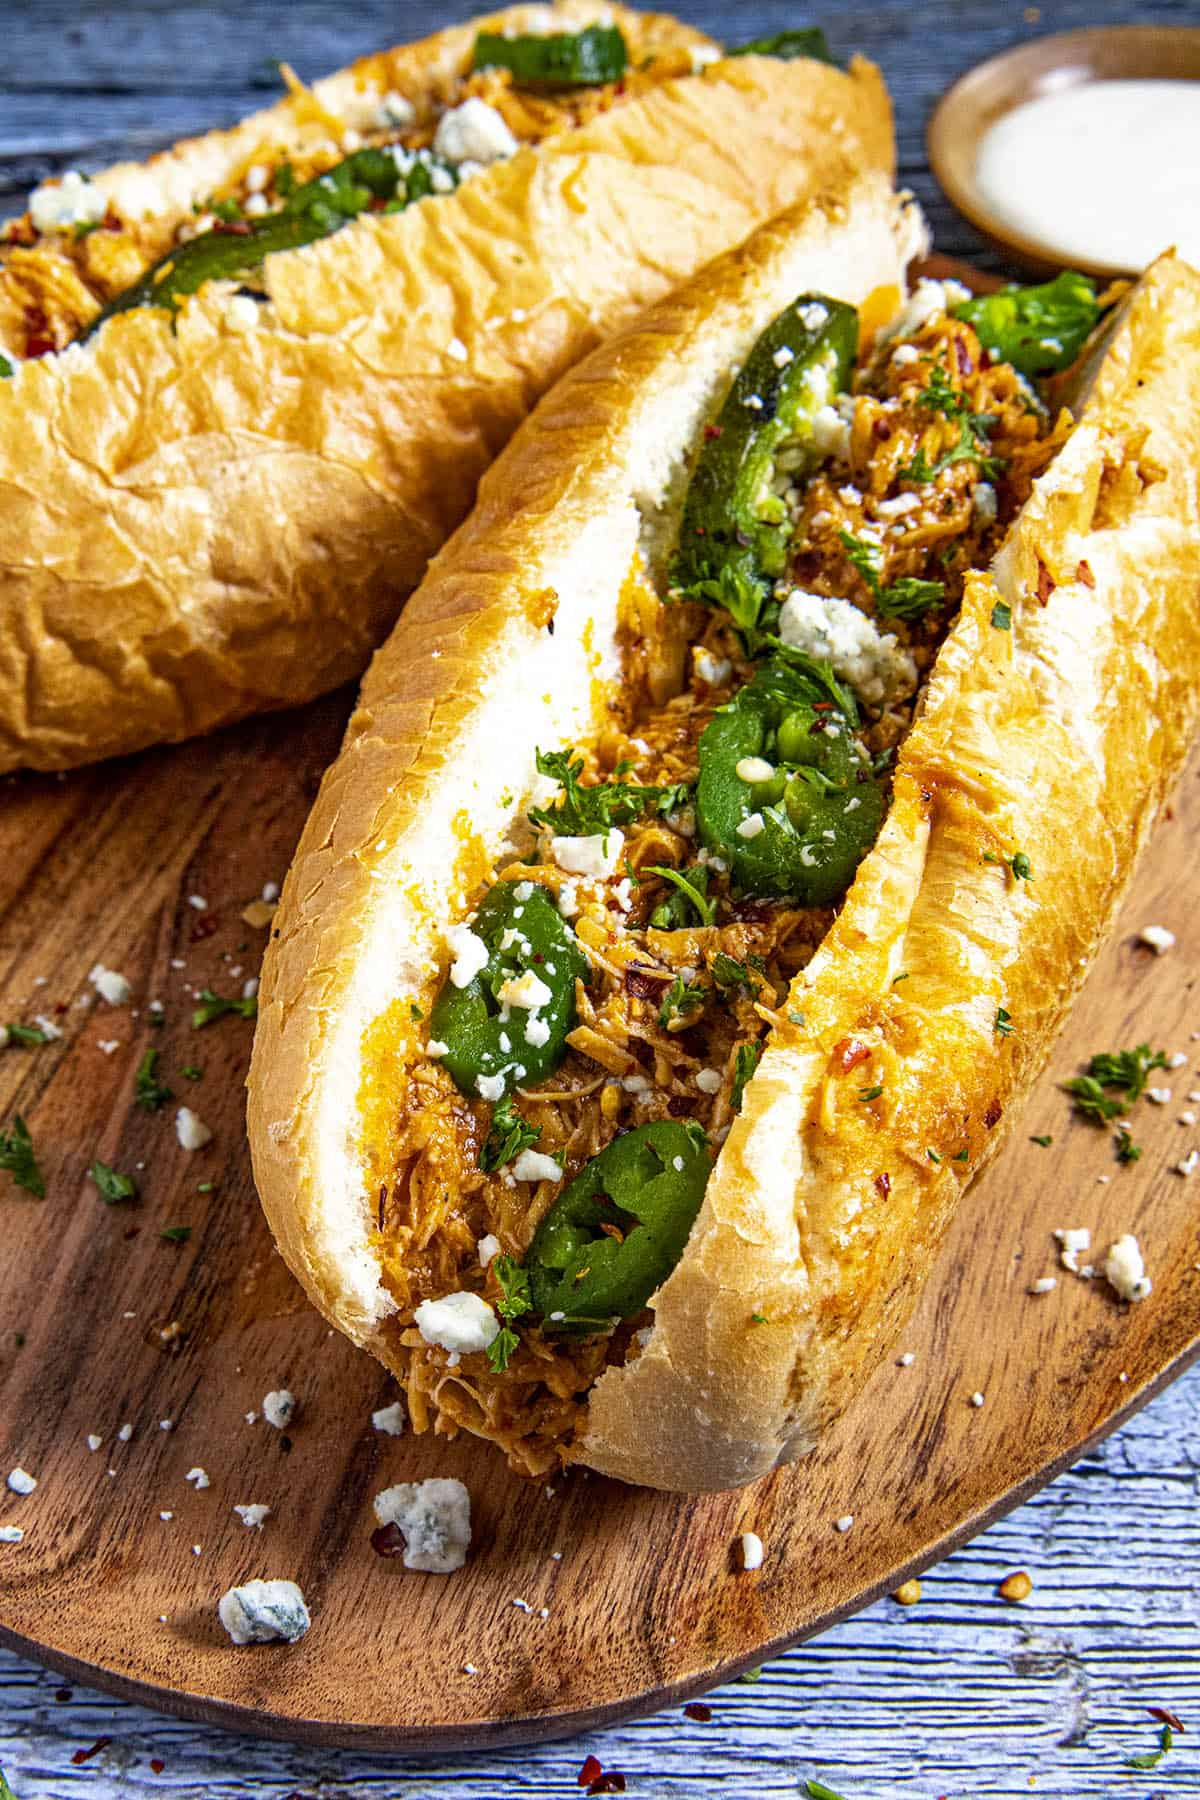 Buffalo Chicken Sandwiches with blue cheese crumbles and roasted jalapenos